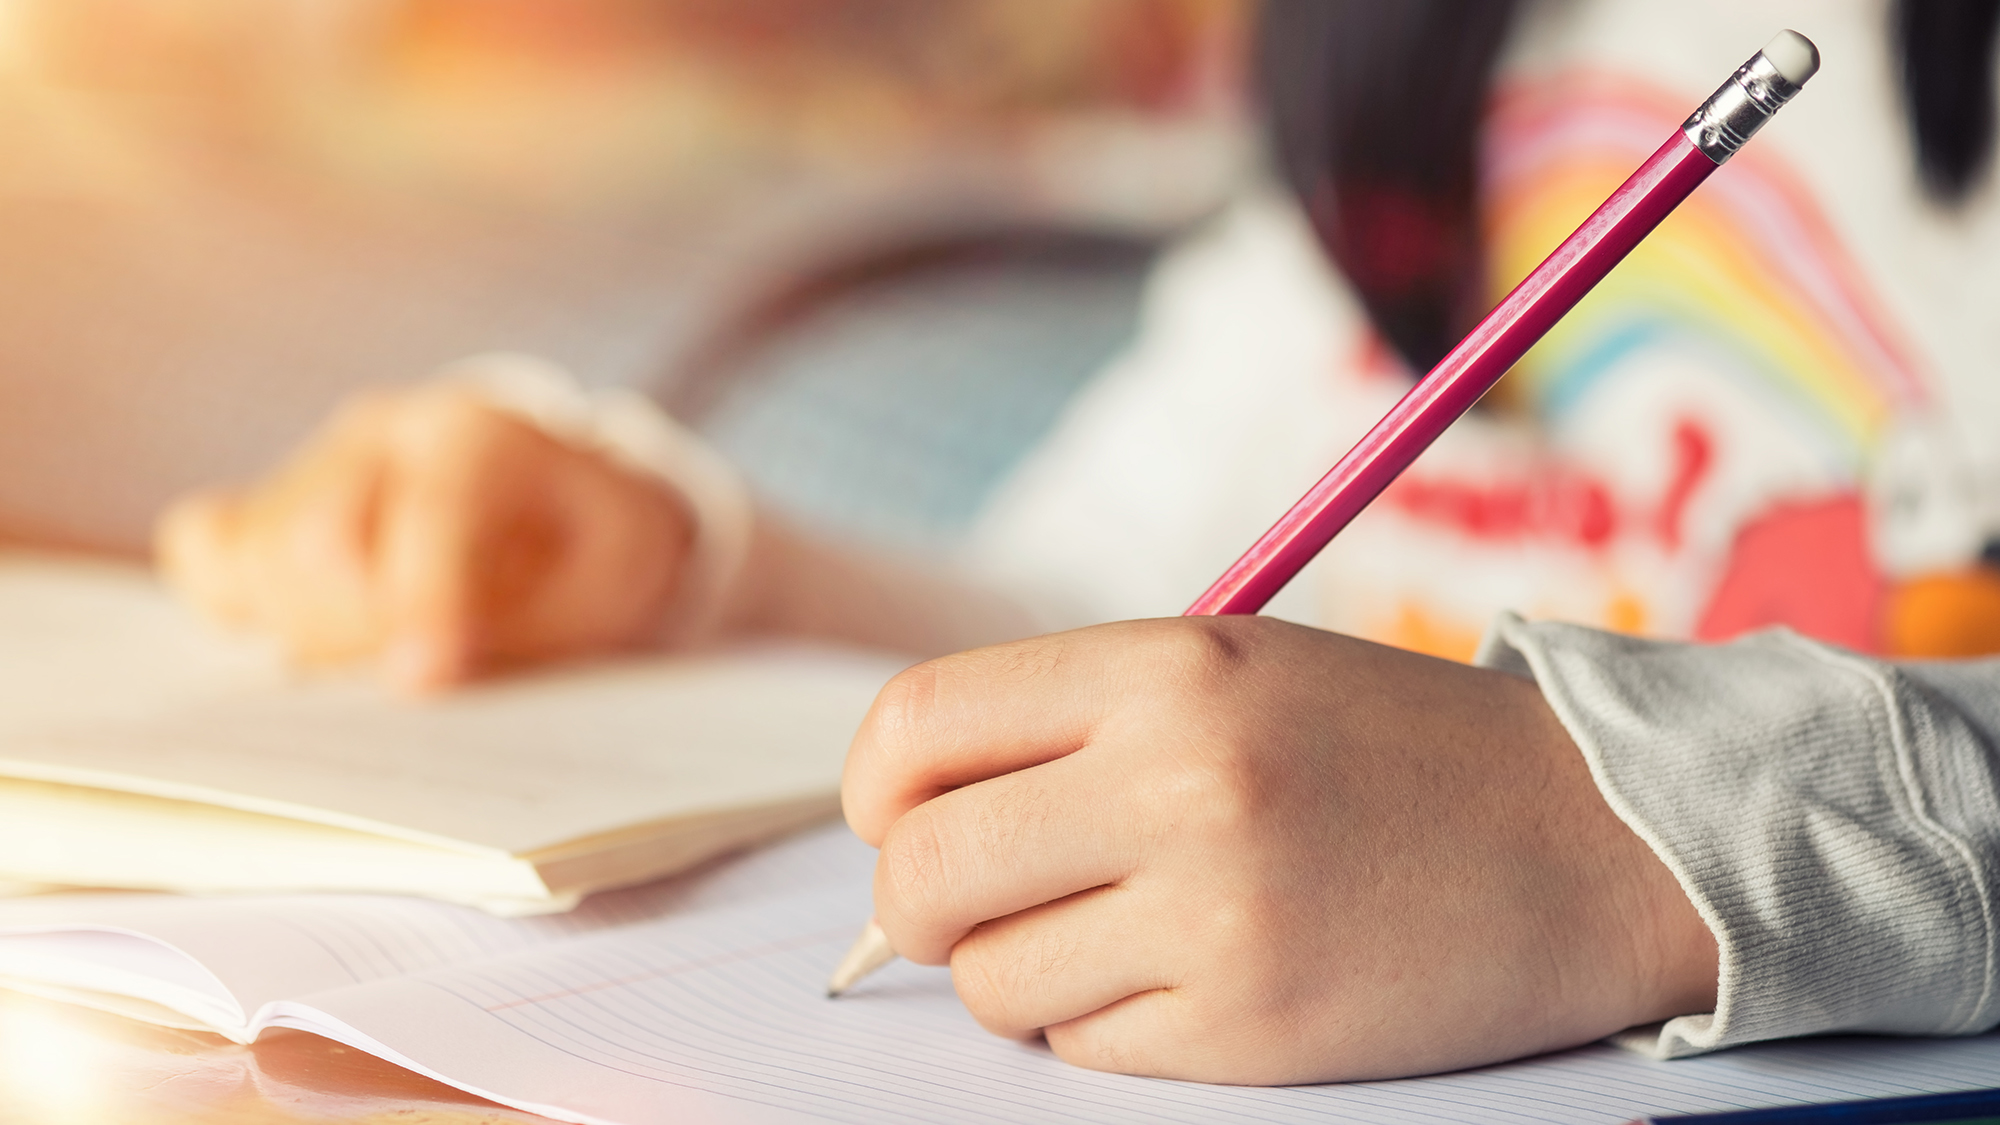 Girl sits at desk doing homework, hand writing in notebook